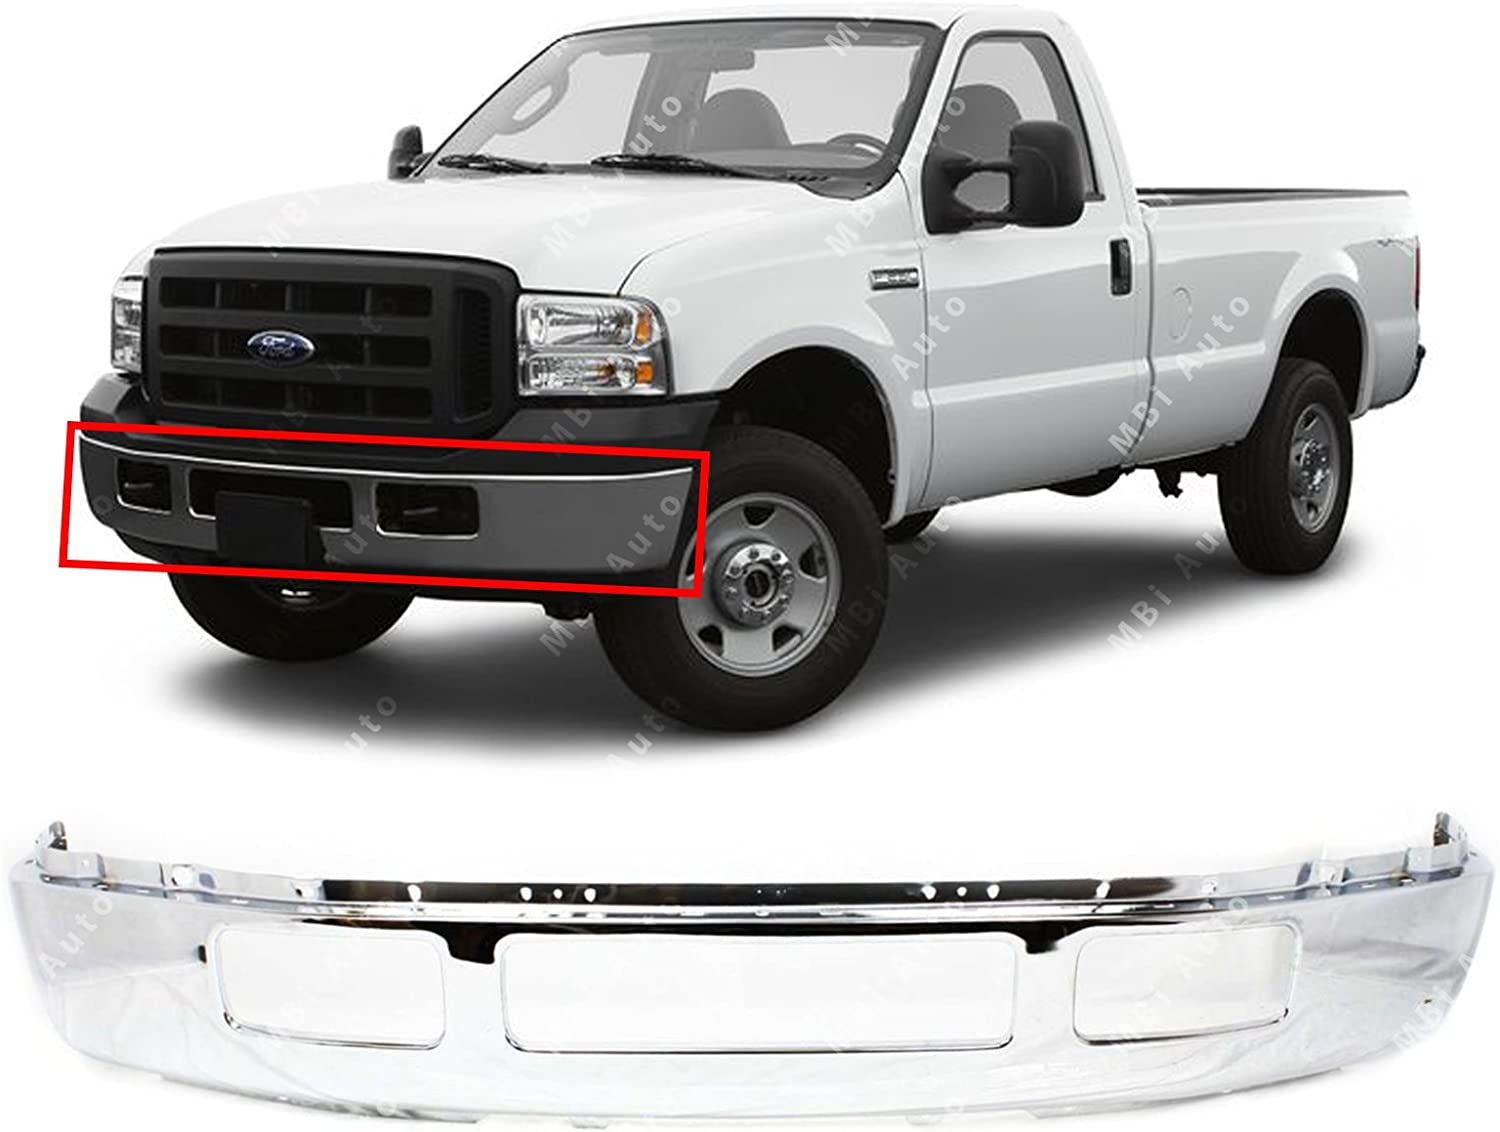 New 2-pc Front Body Door Seal Kit FOR LISTED FORD F250 F350 SUPER DUTY TRUCK